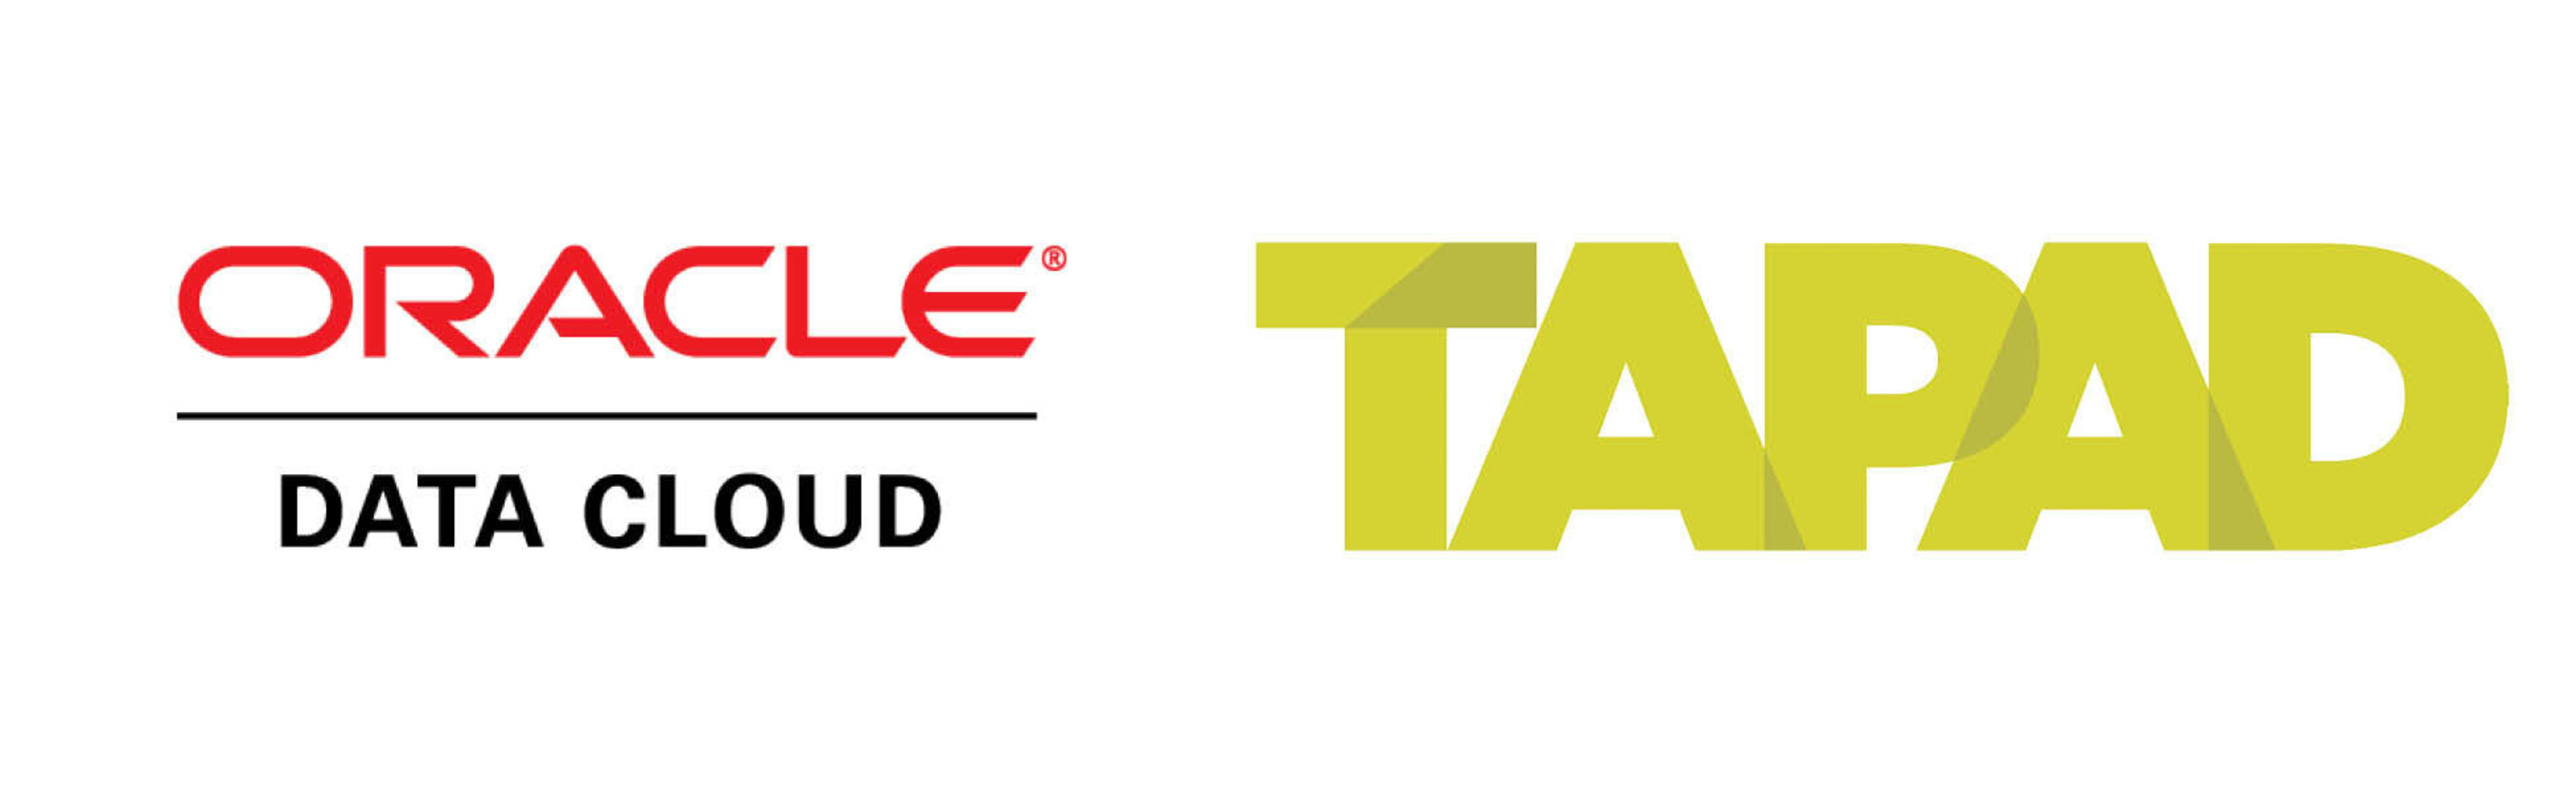 Tapad's Cross-Device Data Now Integrated Into Oracle Data Cloud